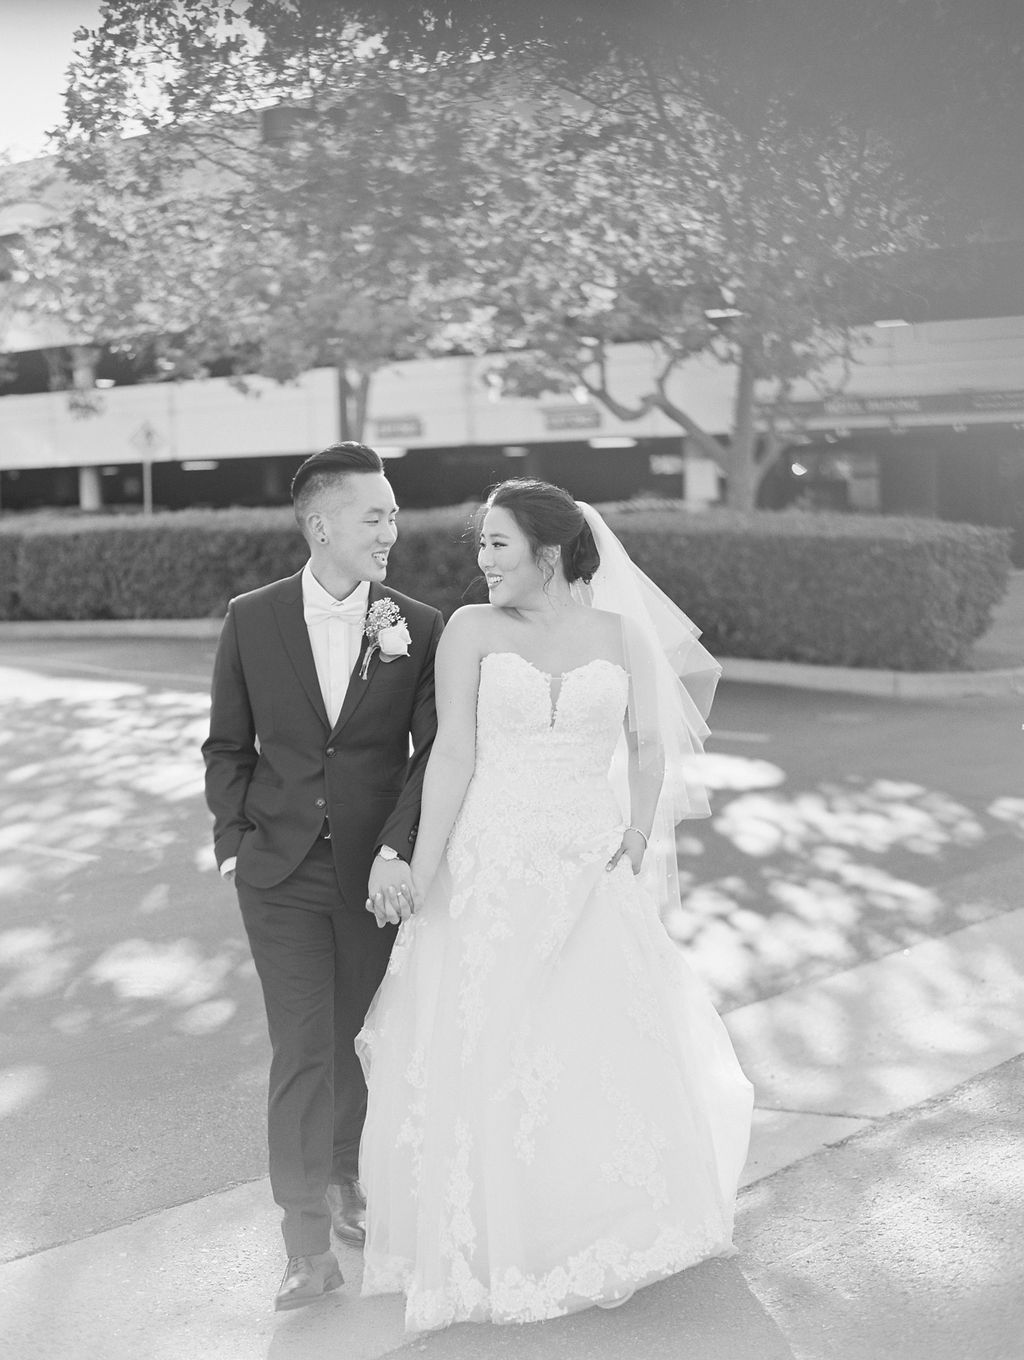 JennySoiPhotography-S&SSFAirportWeddingBrideandGroom-210.jpgSan Francisco Fairmont Hotel Wedding Fine Art Film Wedding Photographer